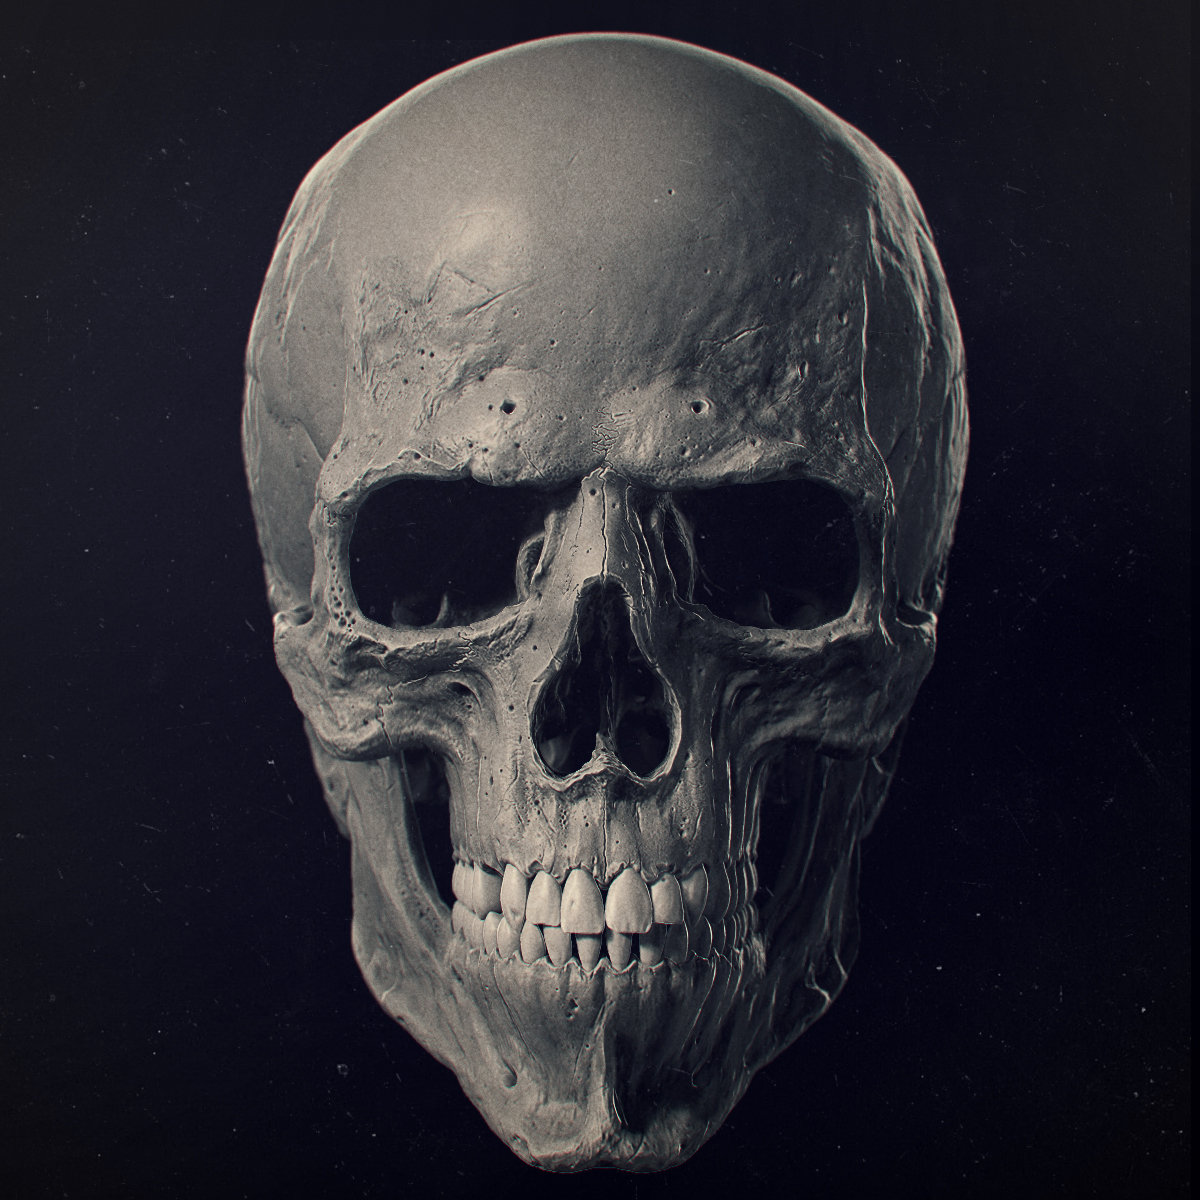 Skull Backgrounds, Compatible - PC, Mobile, Gadgets| 1200x1200 px